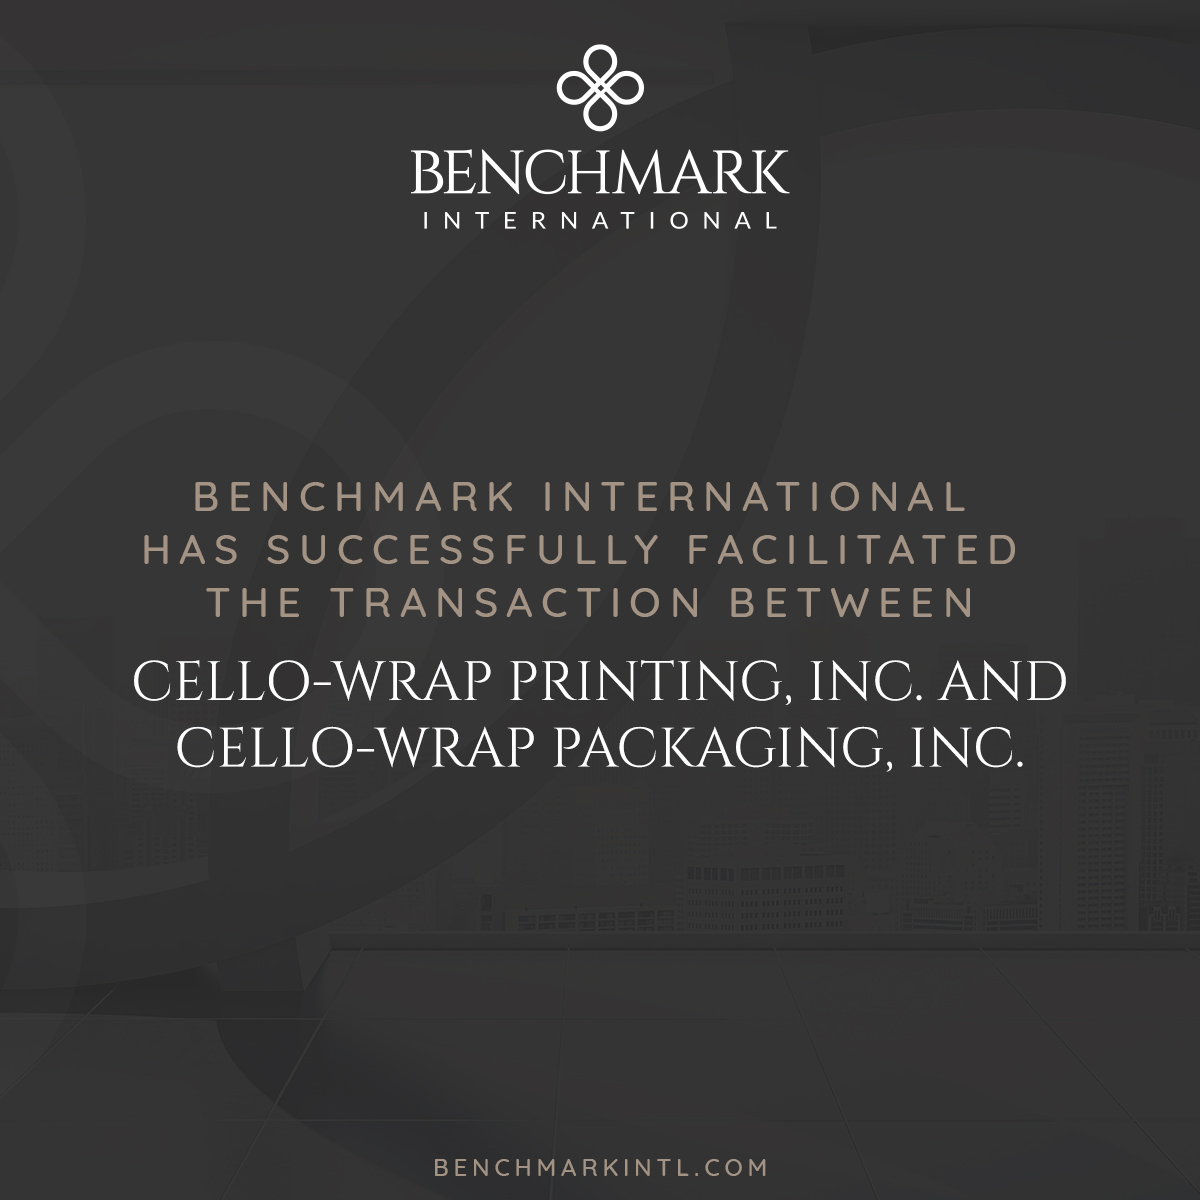 Cello_Wrap_Printing_&_Carroll_Products_Social-1